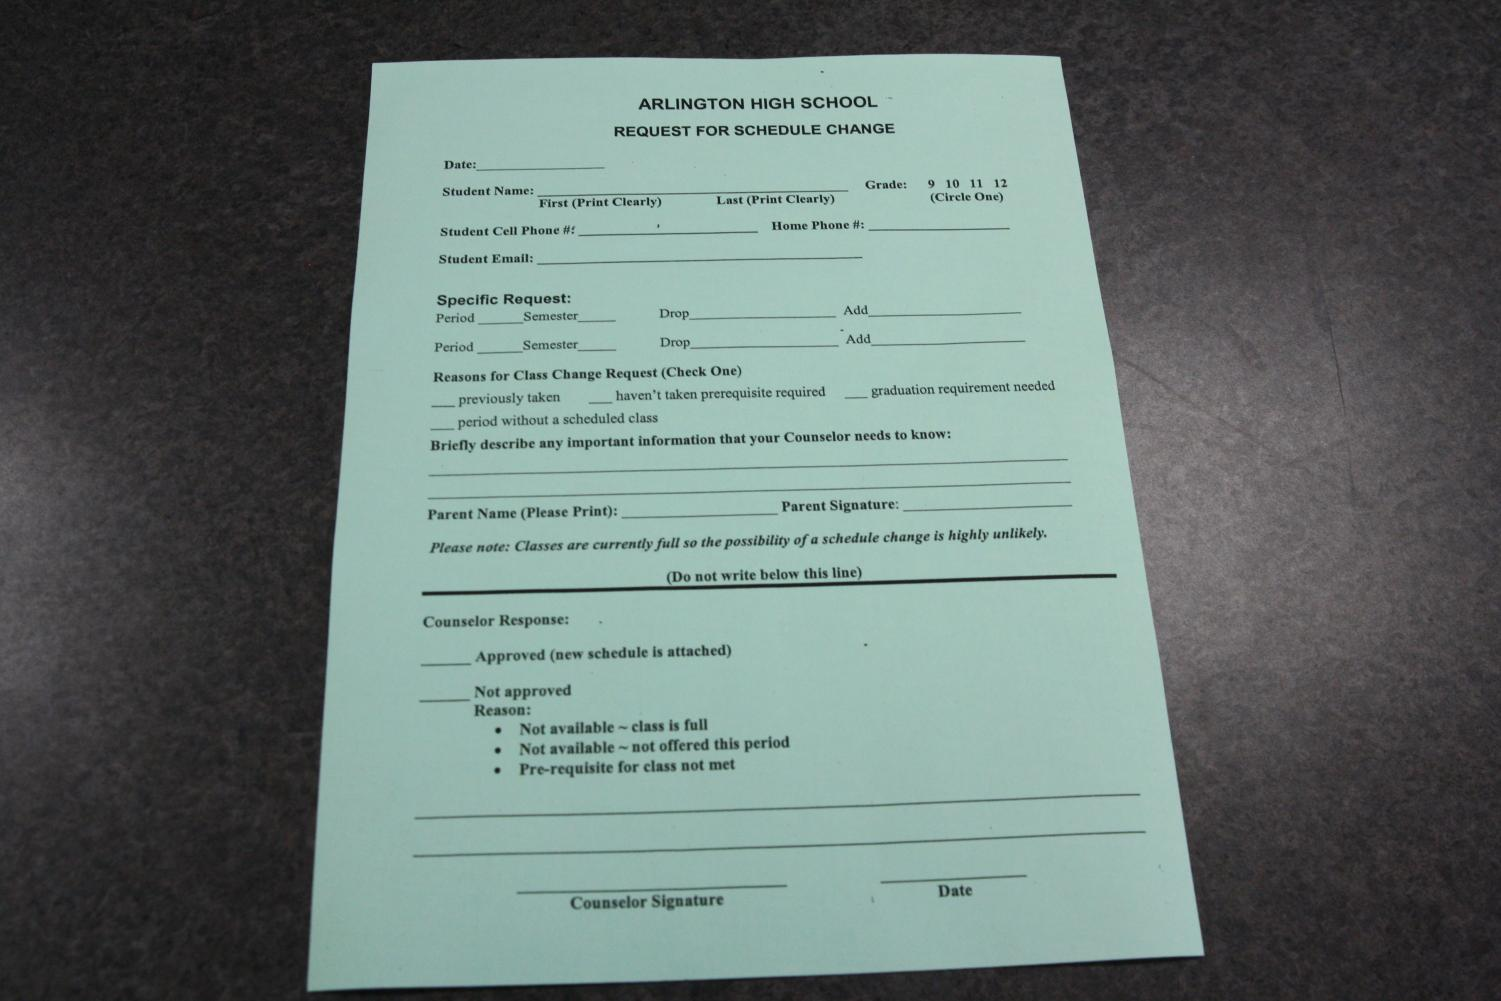 Students pick this form up in the Counselor's office if there is something in their schedule that they want to try and change.